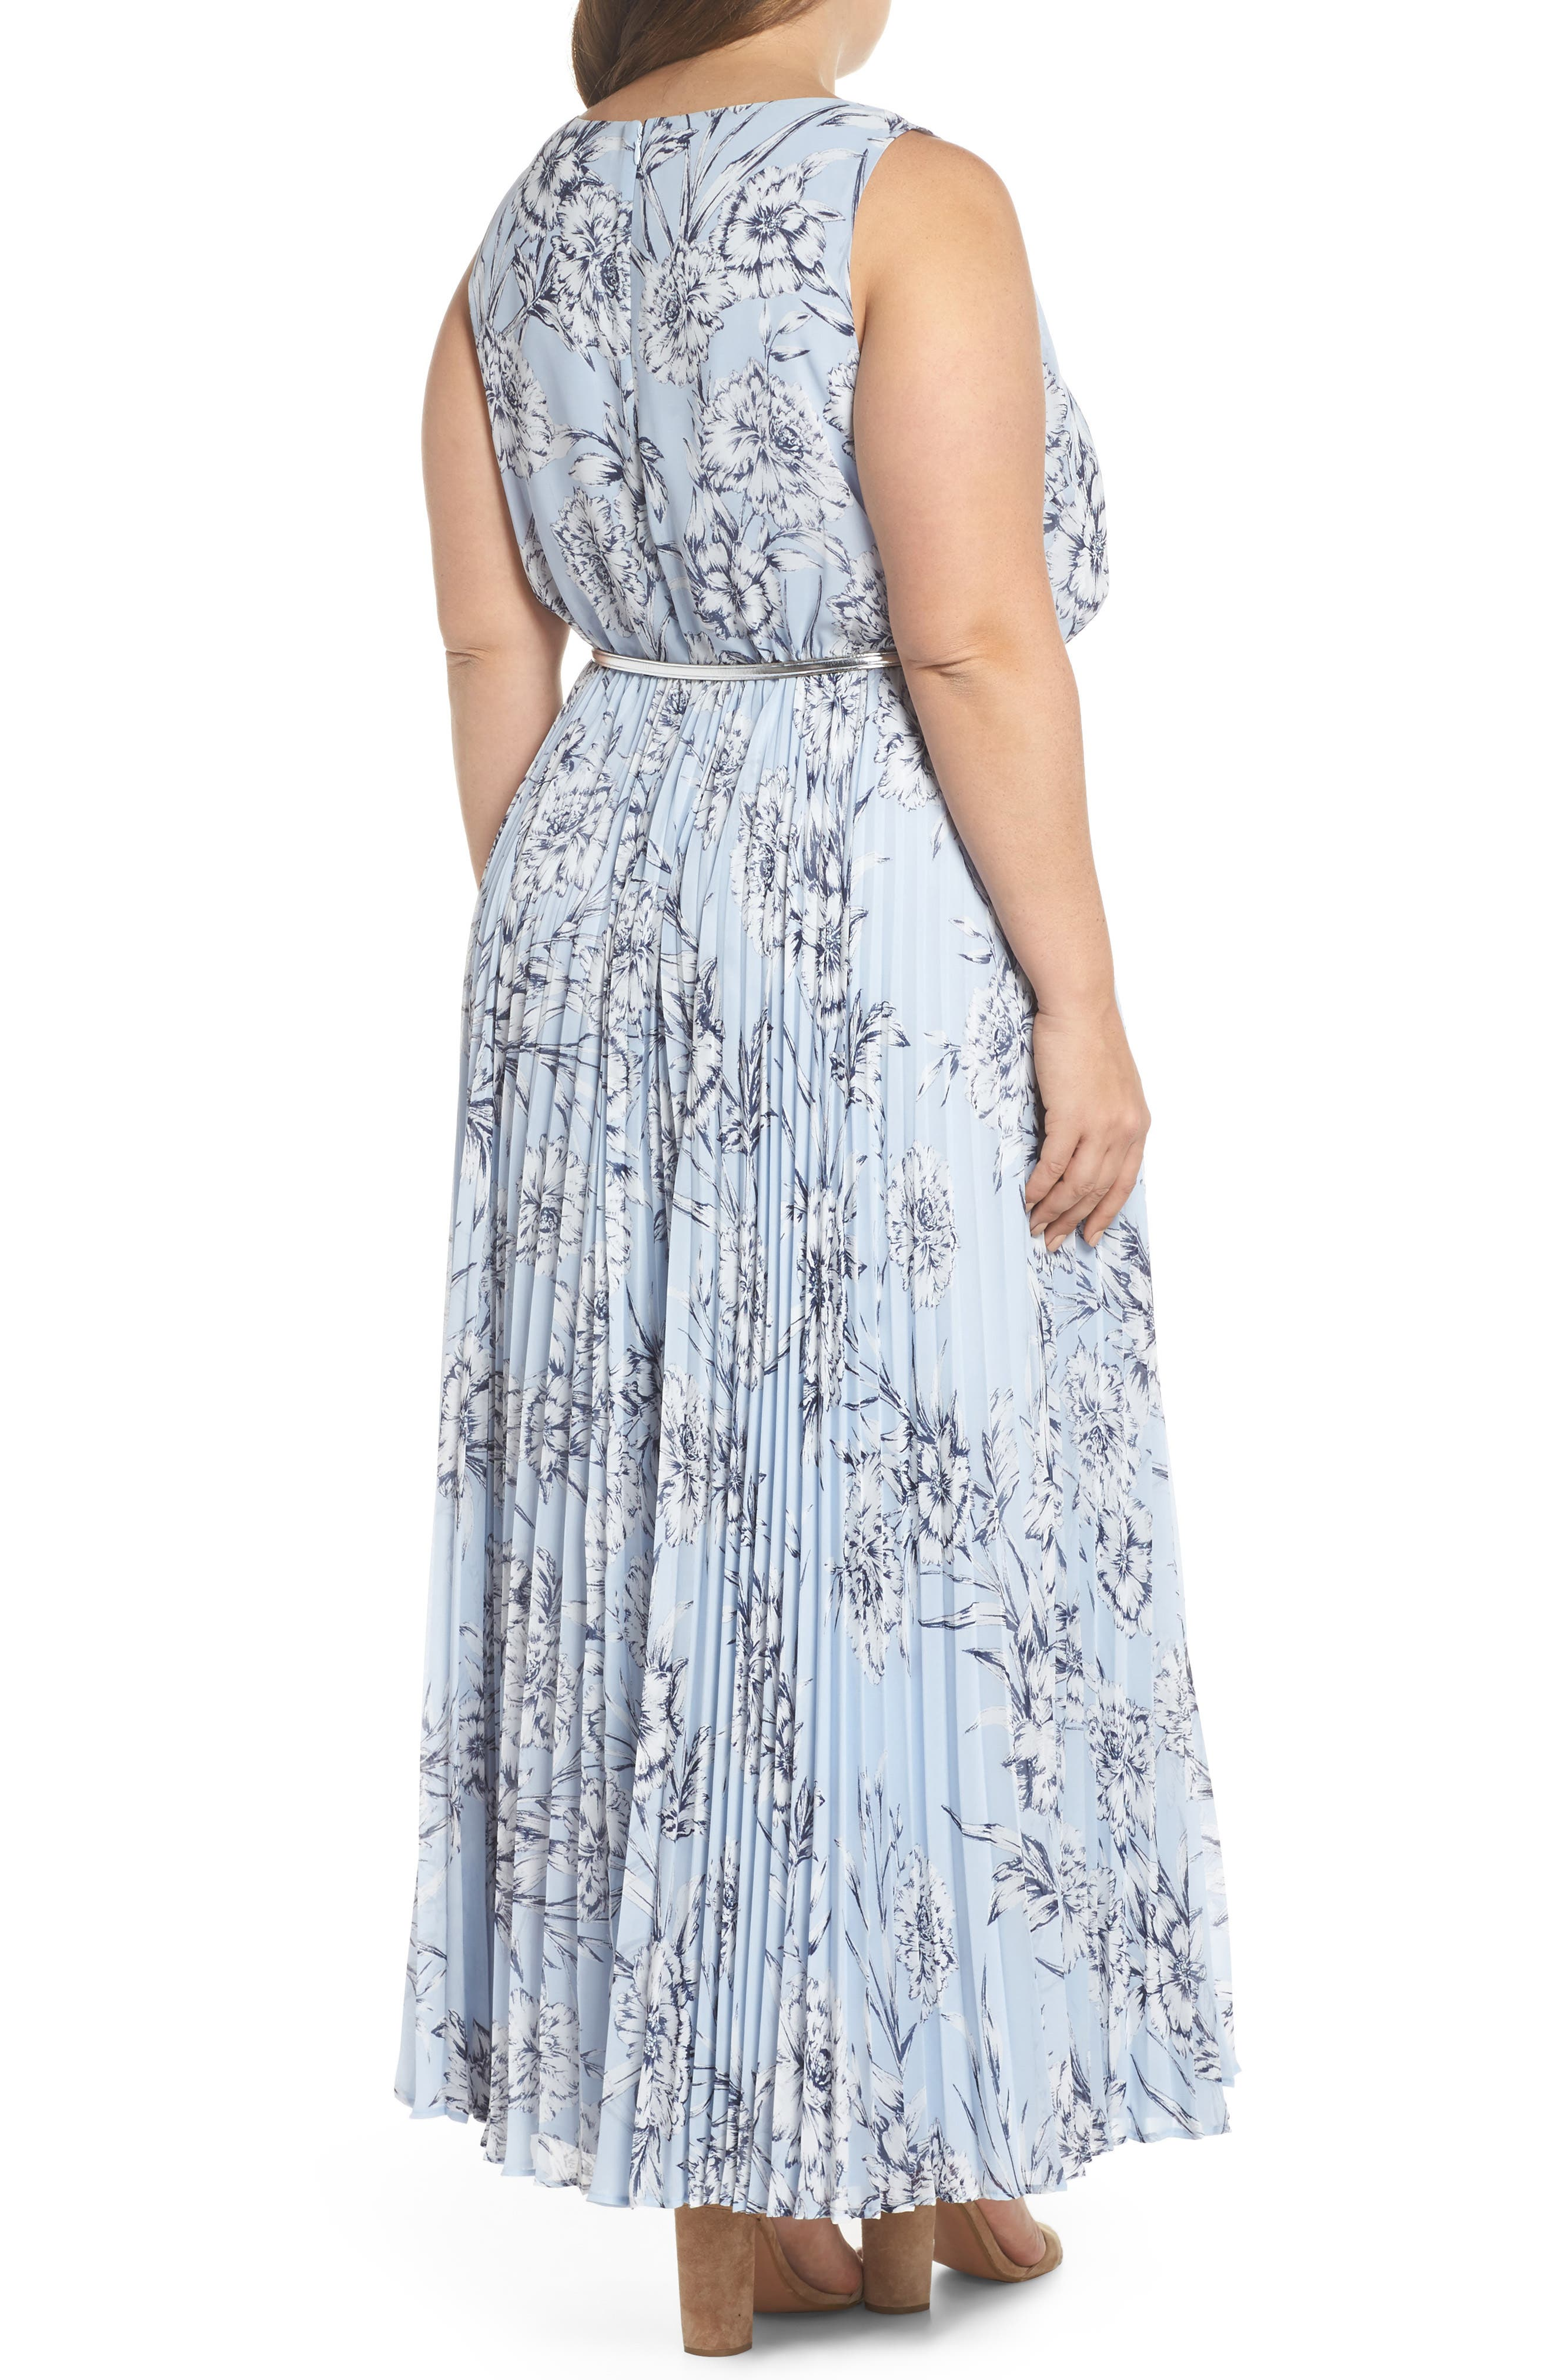 Belted Floral Maxi Dress,                             Alternate thumbnail 2, color,                             421